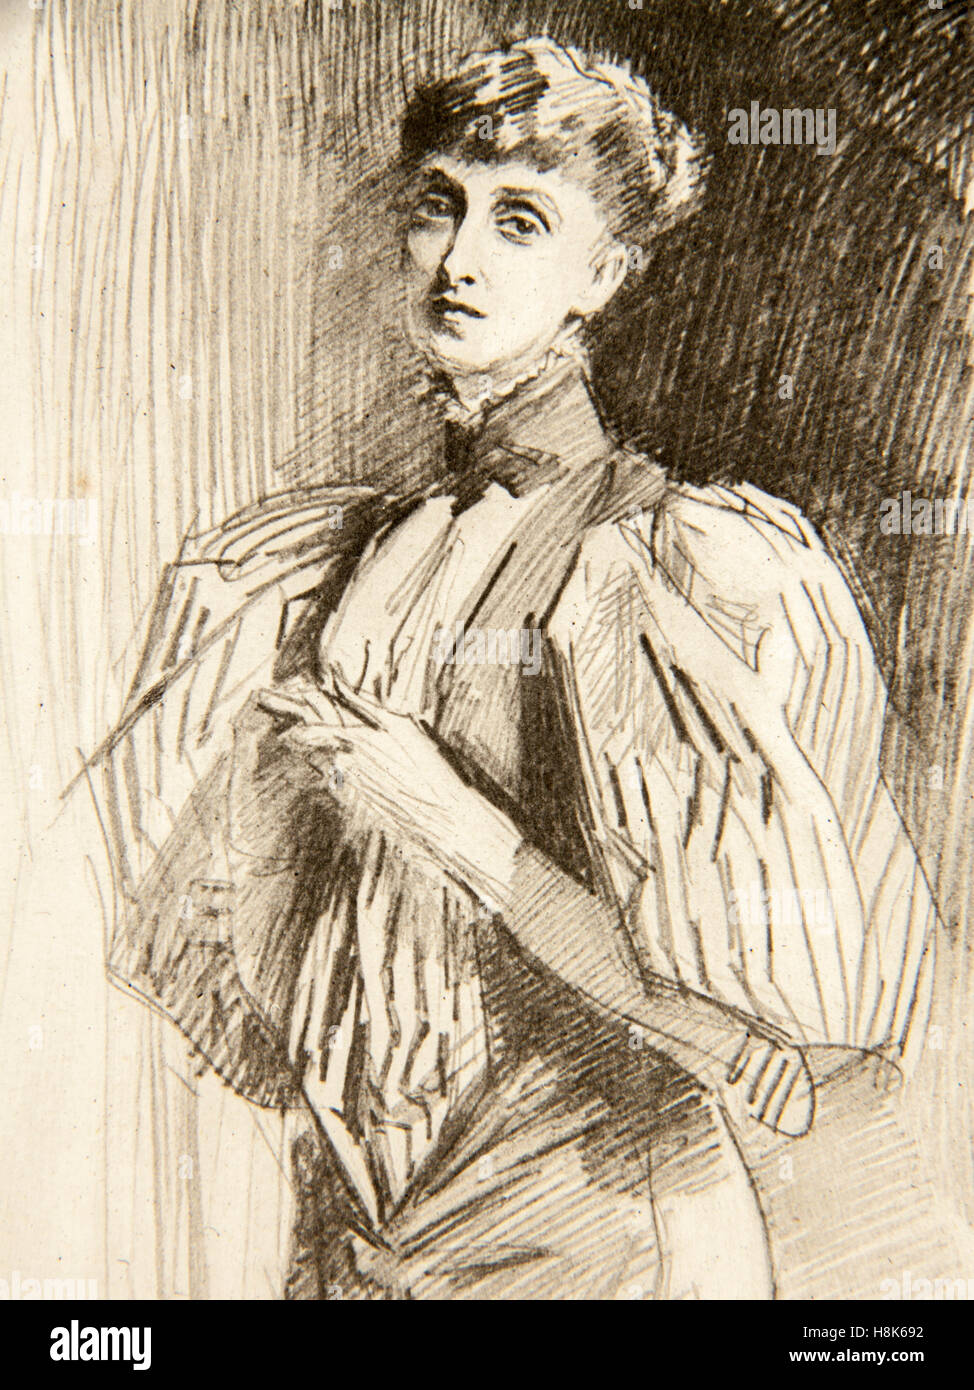 Drawing of Alice Meynell (1847-1922) by John Singer Sargent